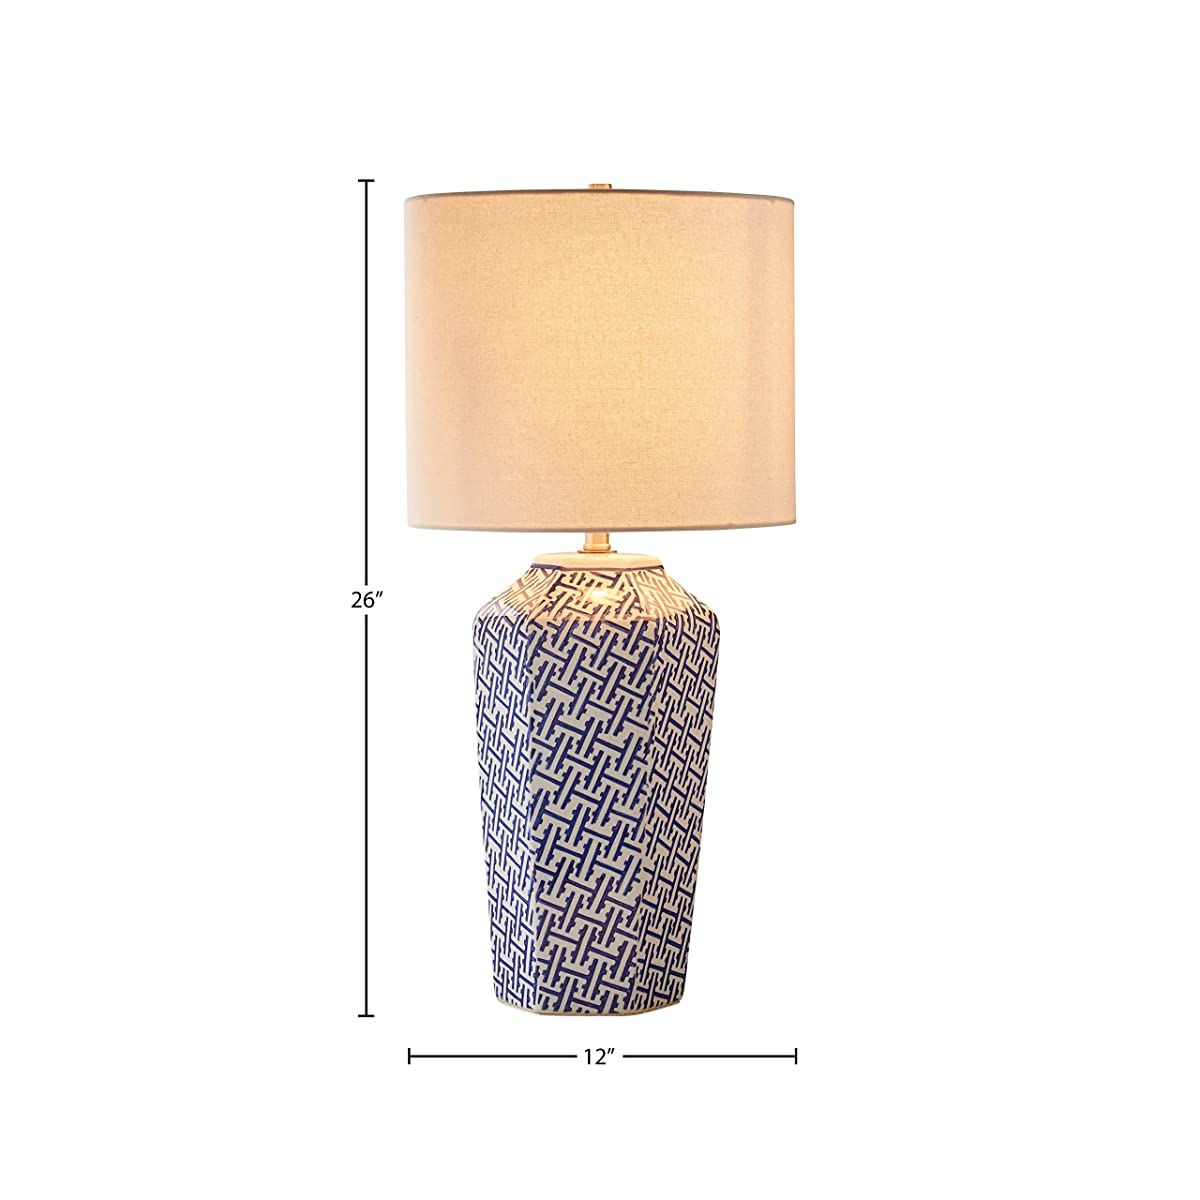 "Stone & Beam Geo Pattern Ceramic Lamp With Bulb, 26""H, Blue and White"